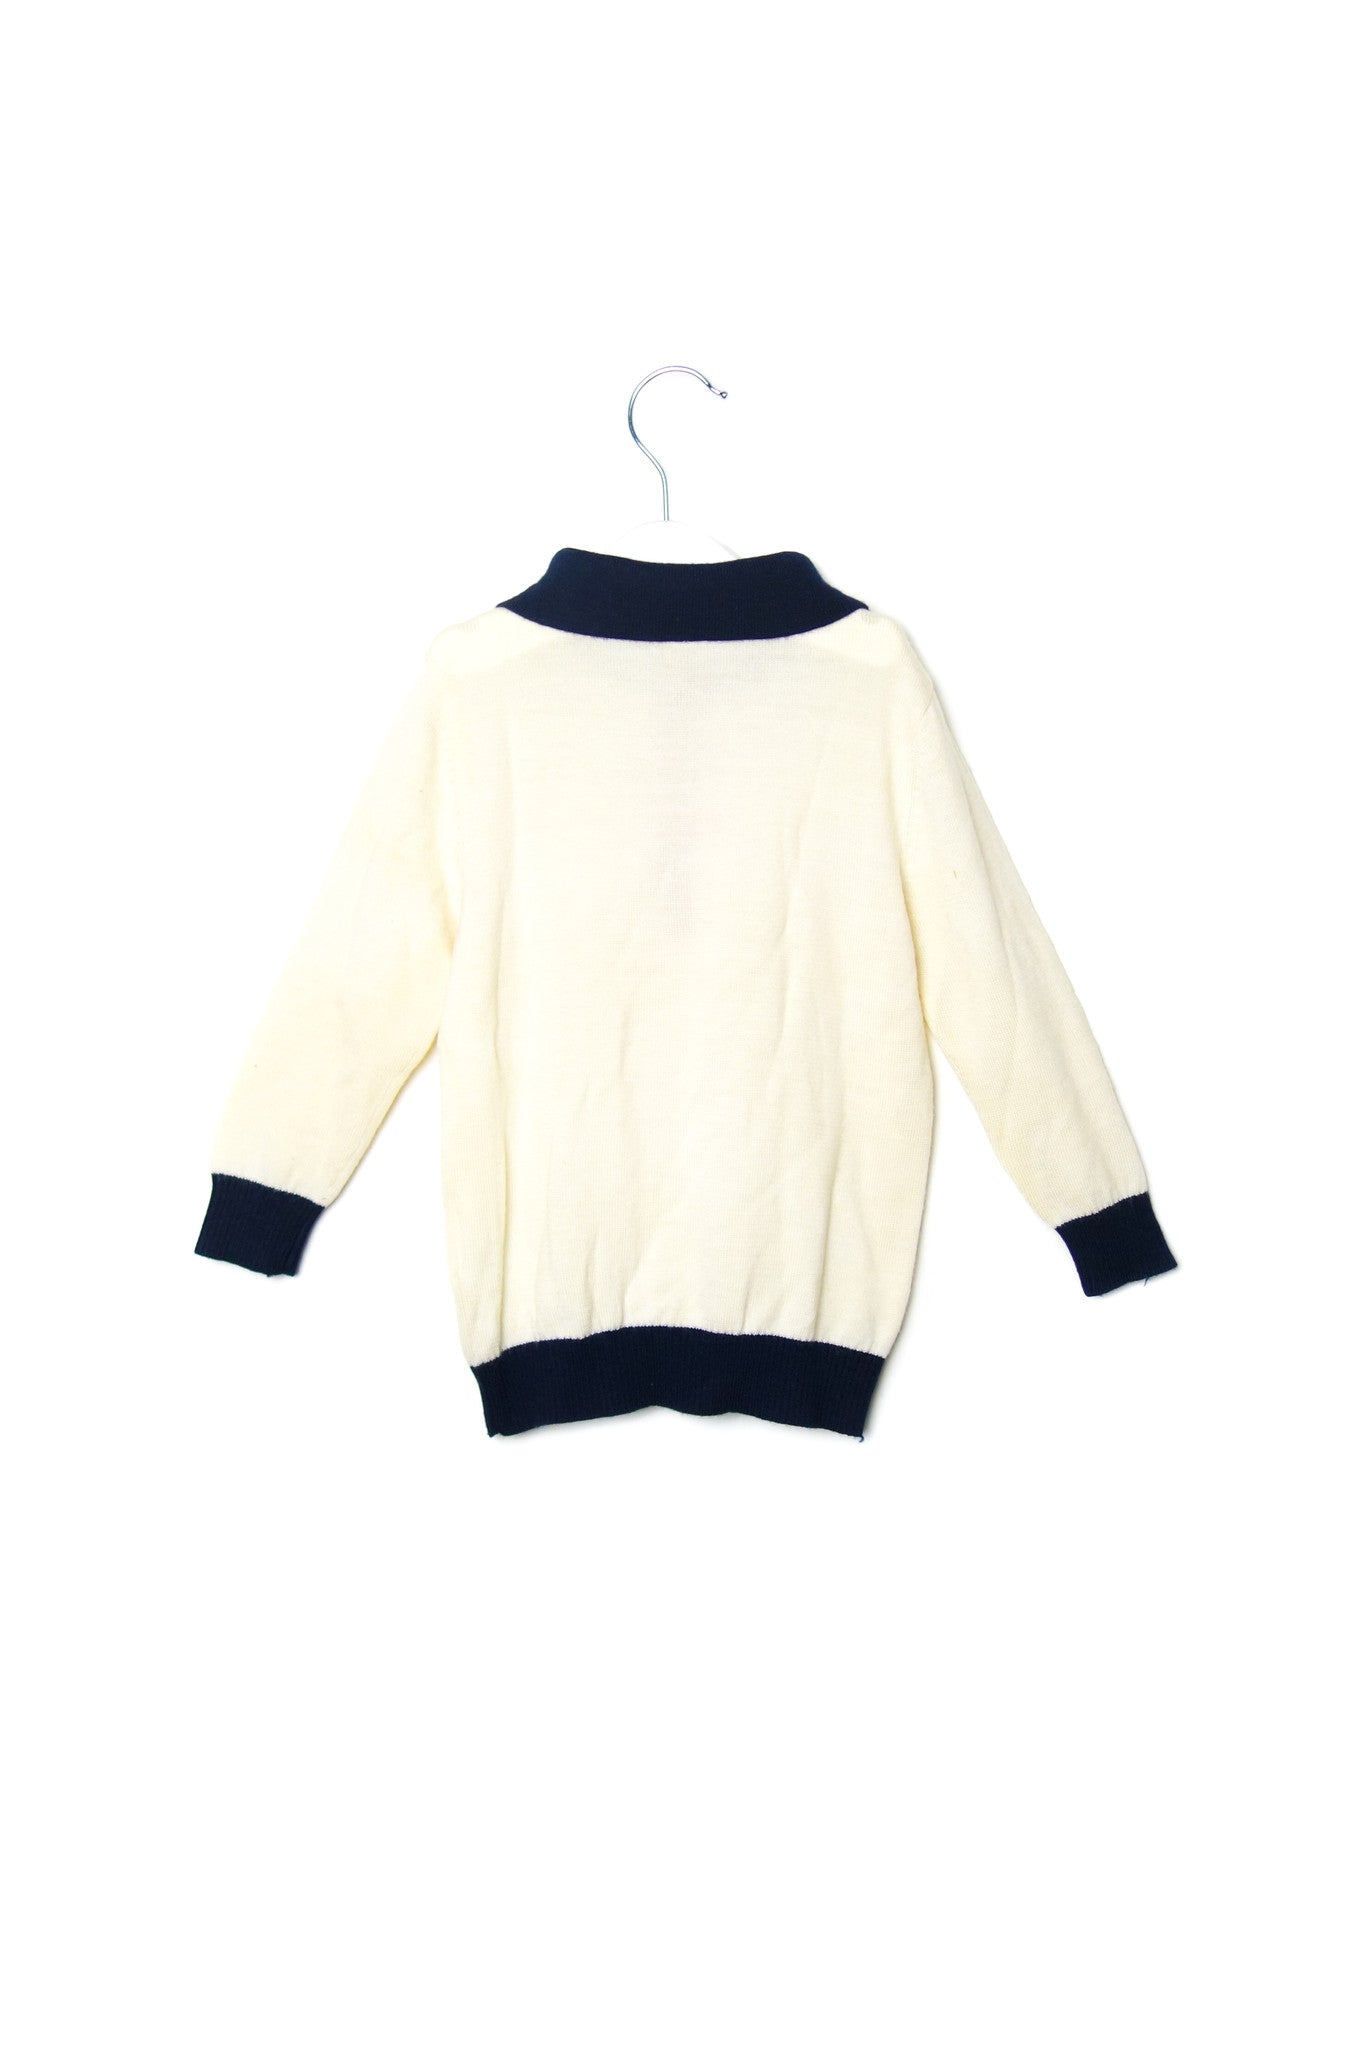 10001816 Nicholas & Bears Kids~Sweater 2T at Retykle